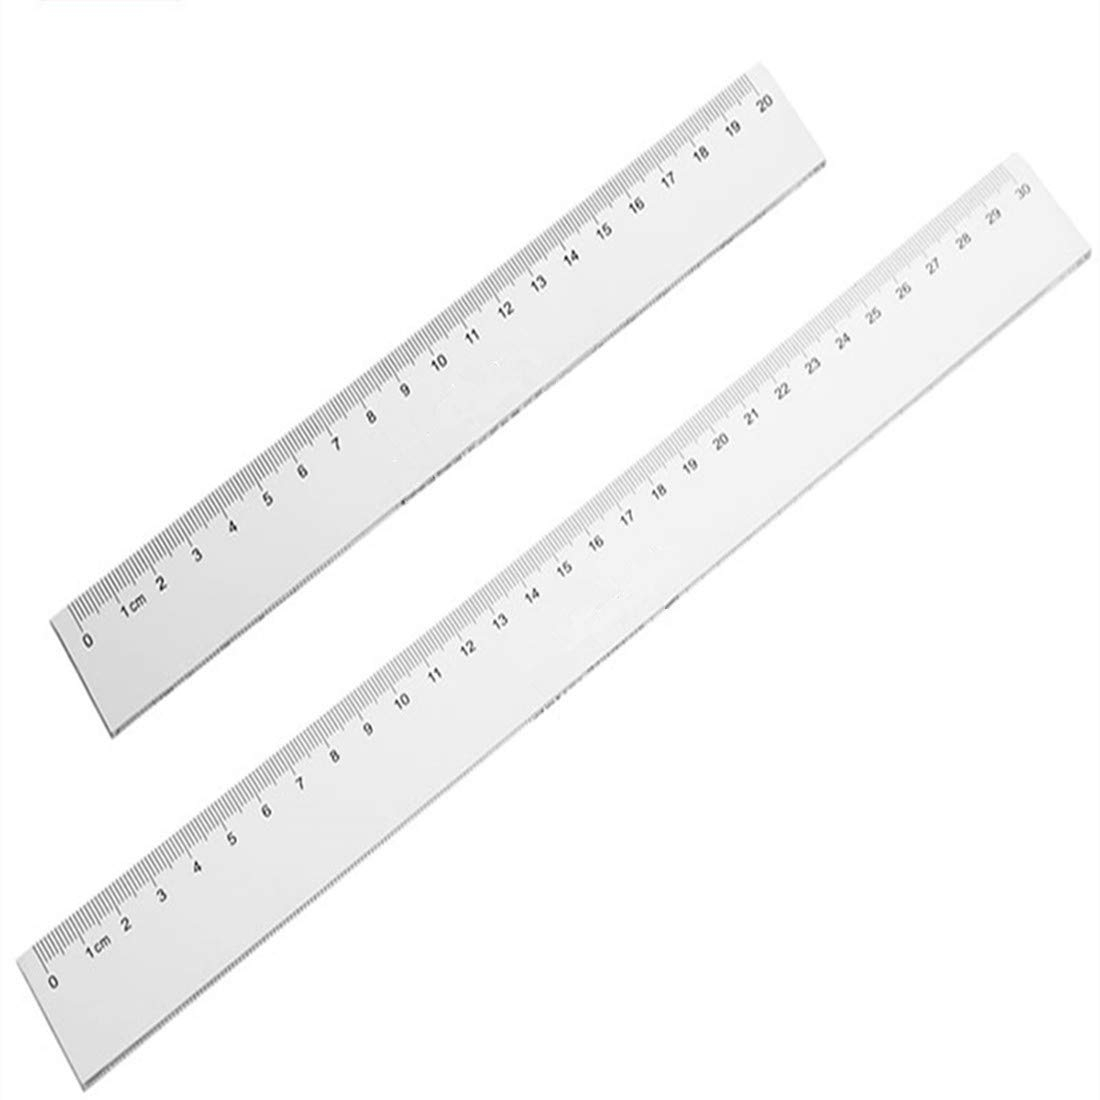 Cheap Printable Scale Ruler Inches, Find Printable Scale